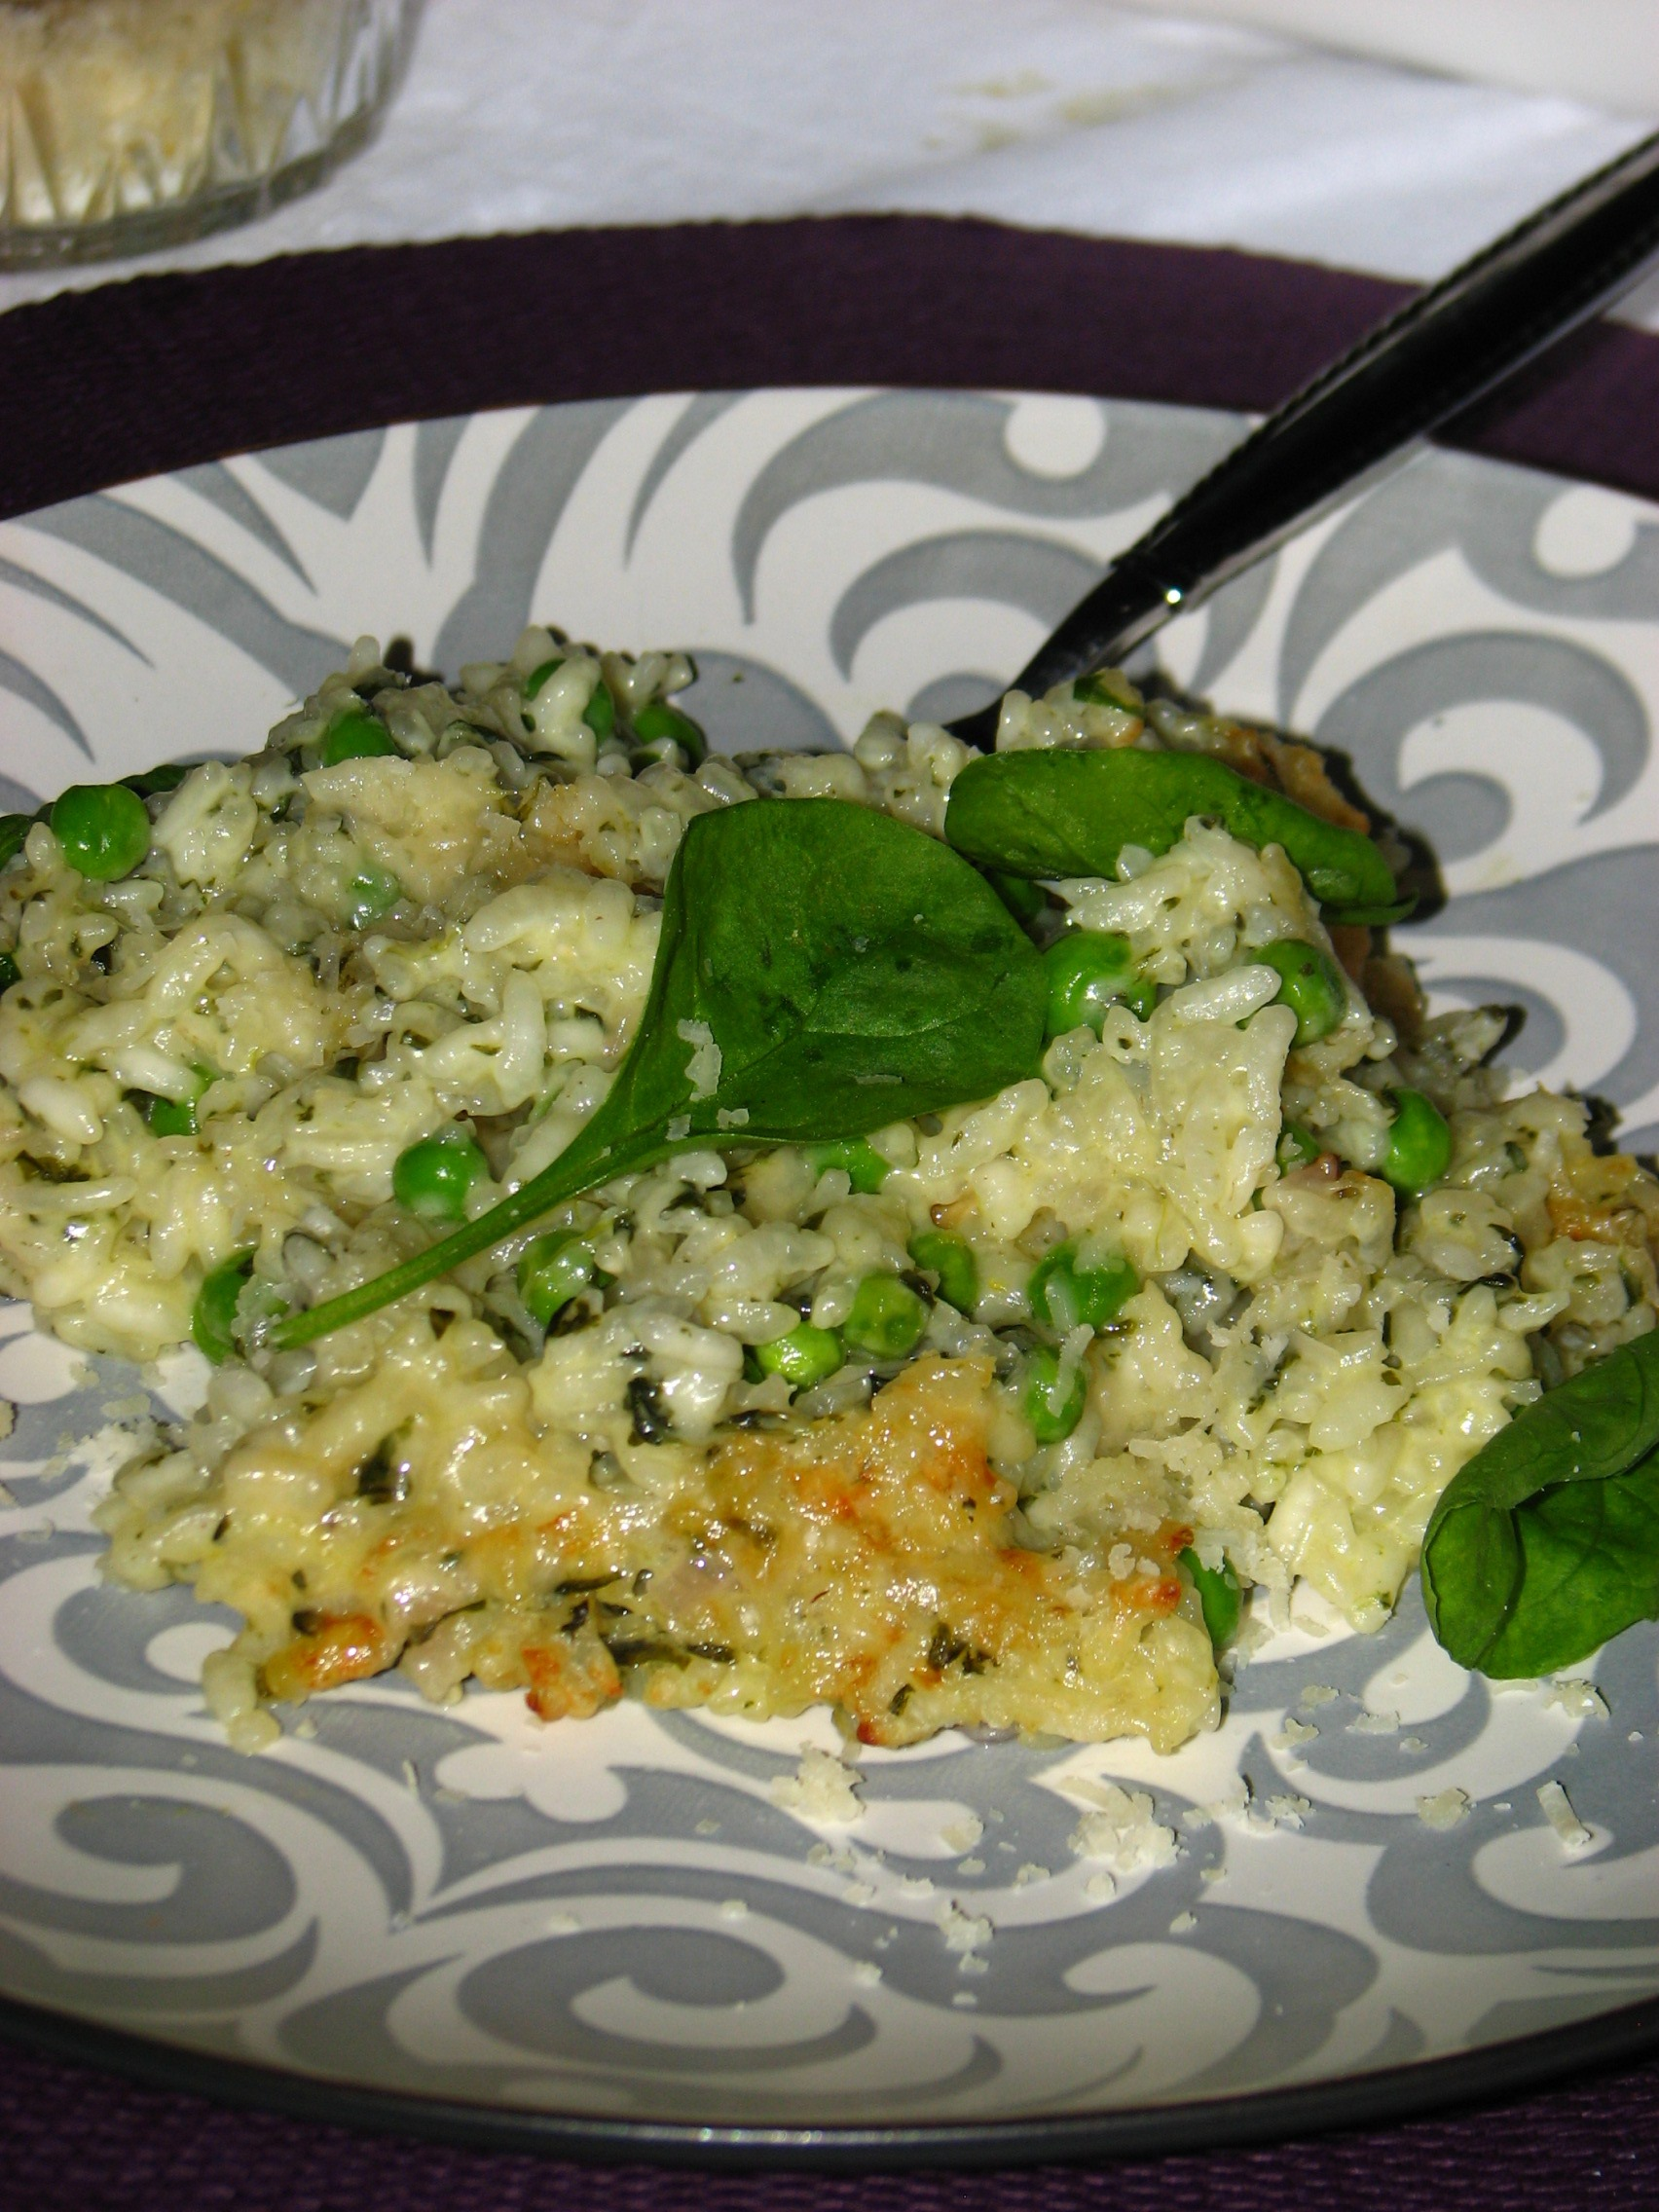 Baked Risotto with Spinach, Peas & Lemon - Simply Delicious